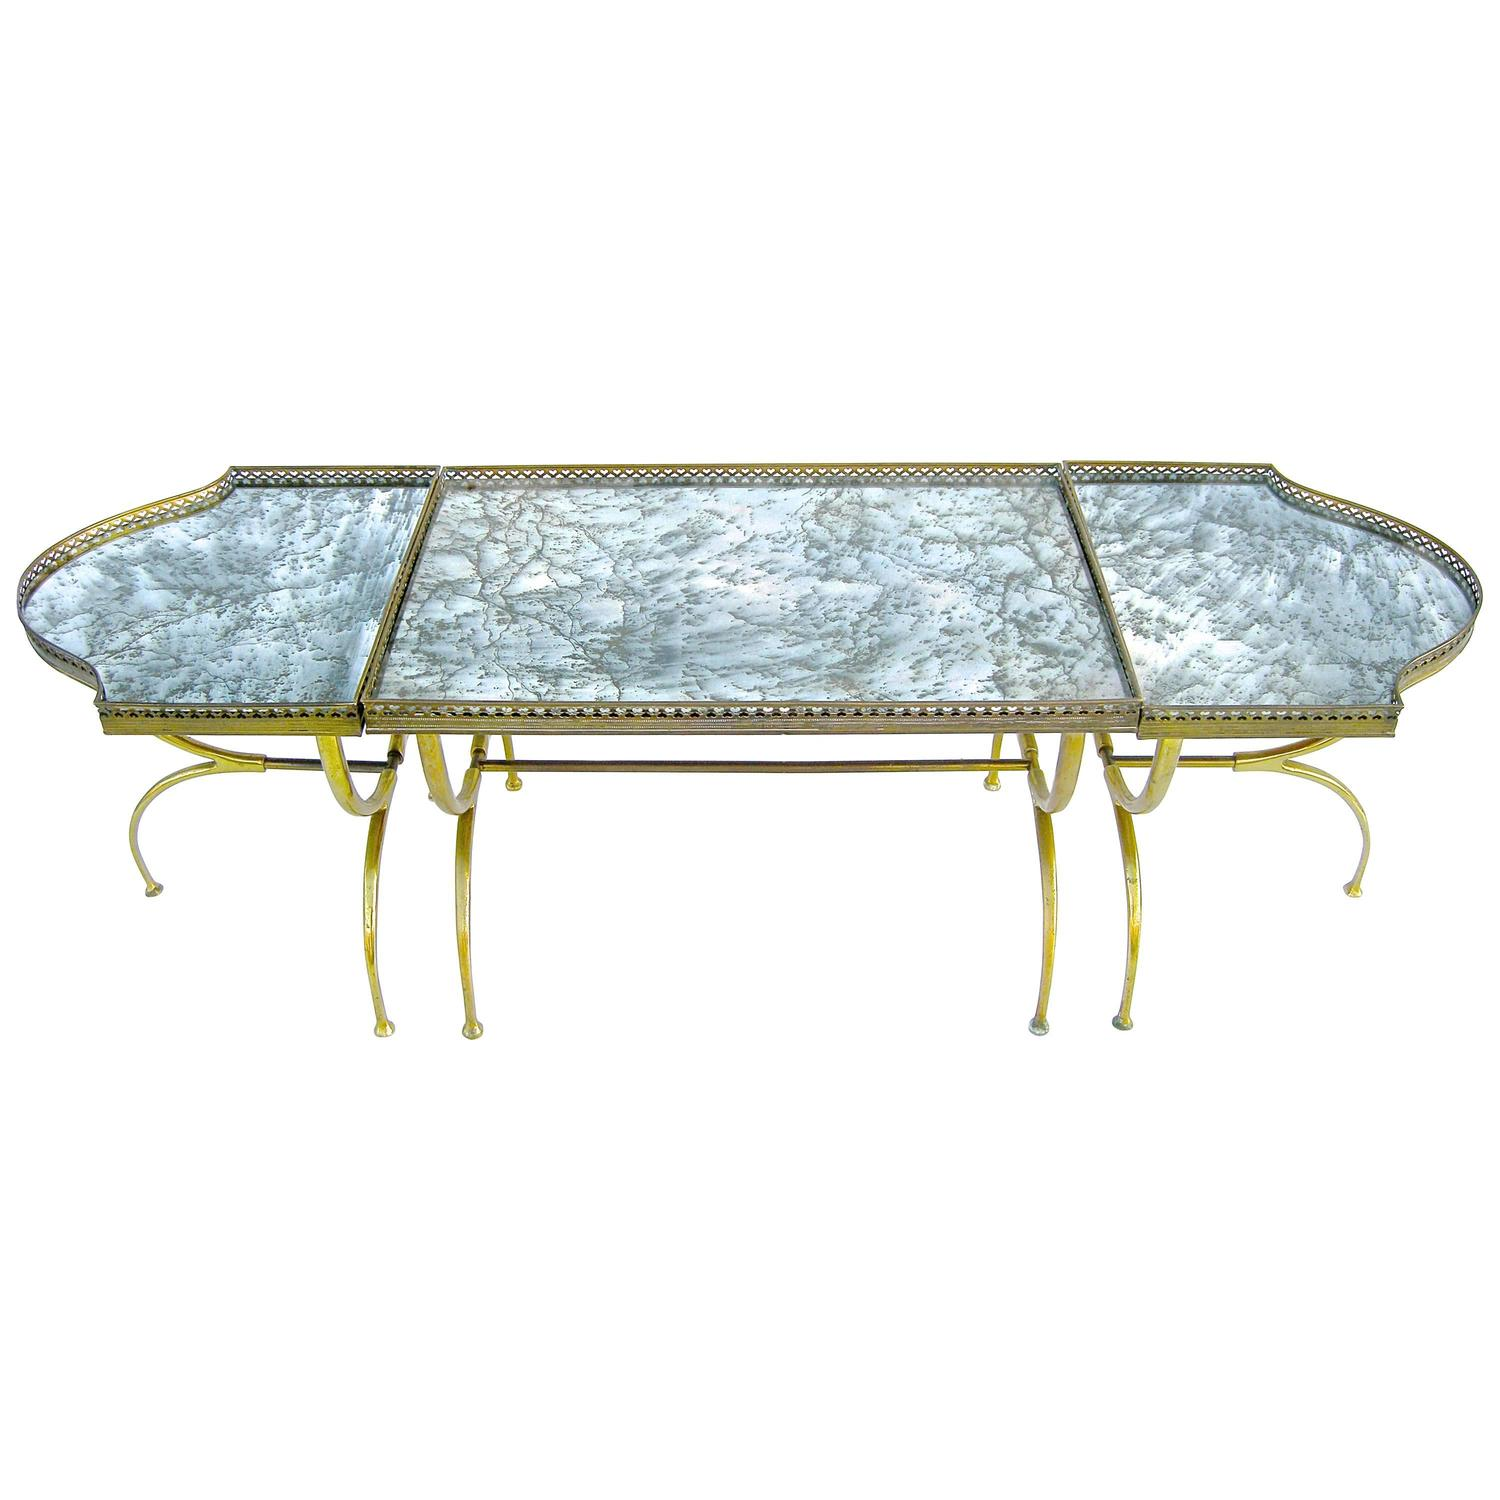 Italian mirrored coffee table at 1stdibs for Mirrored coffee tables